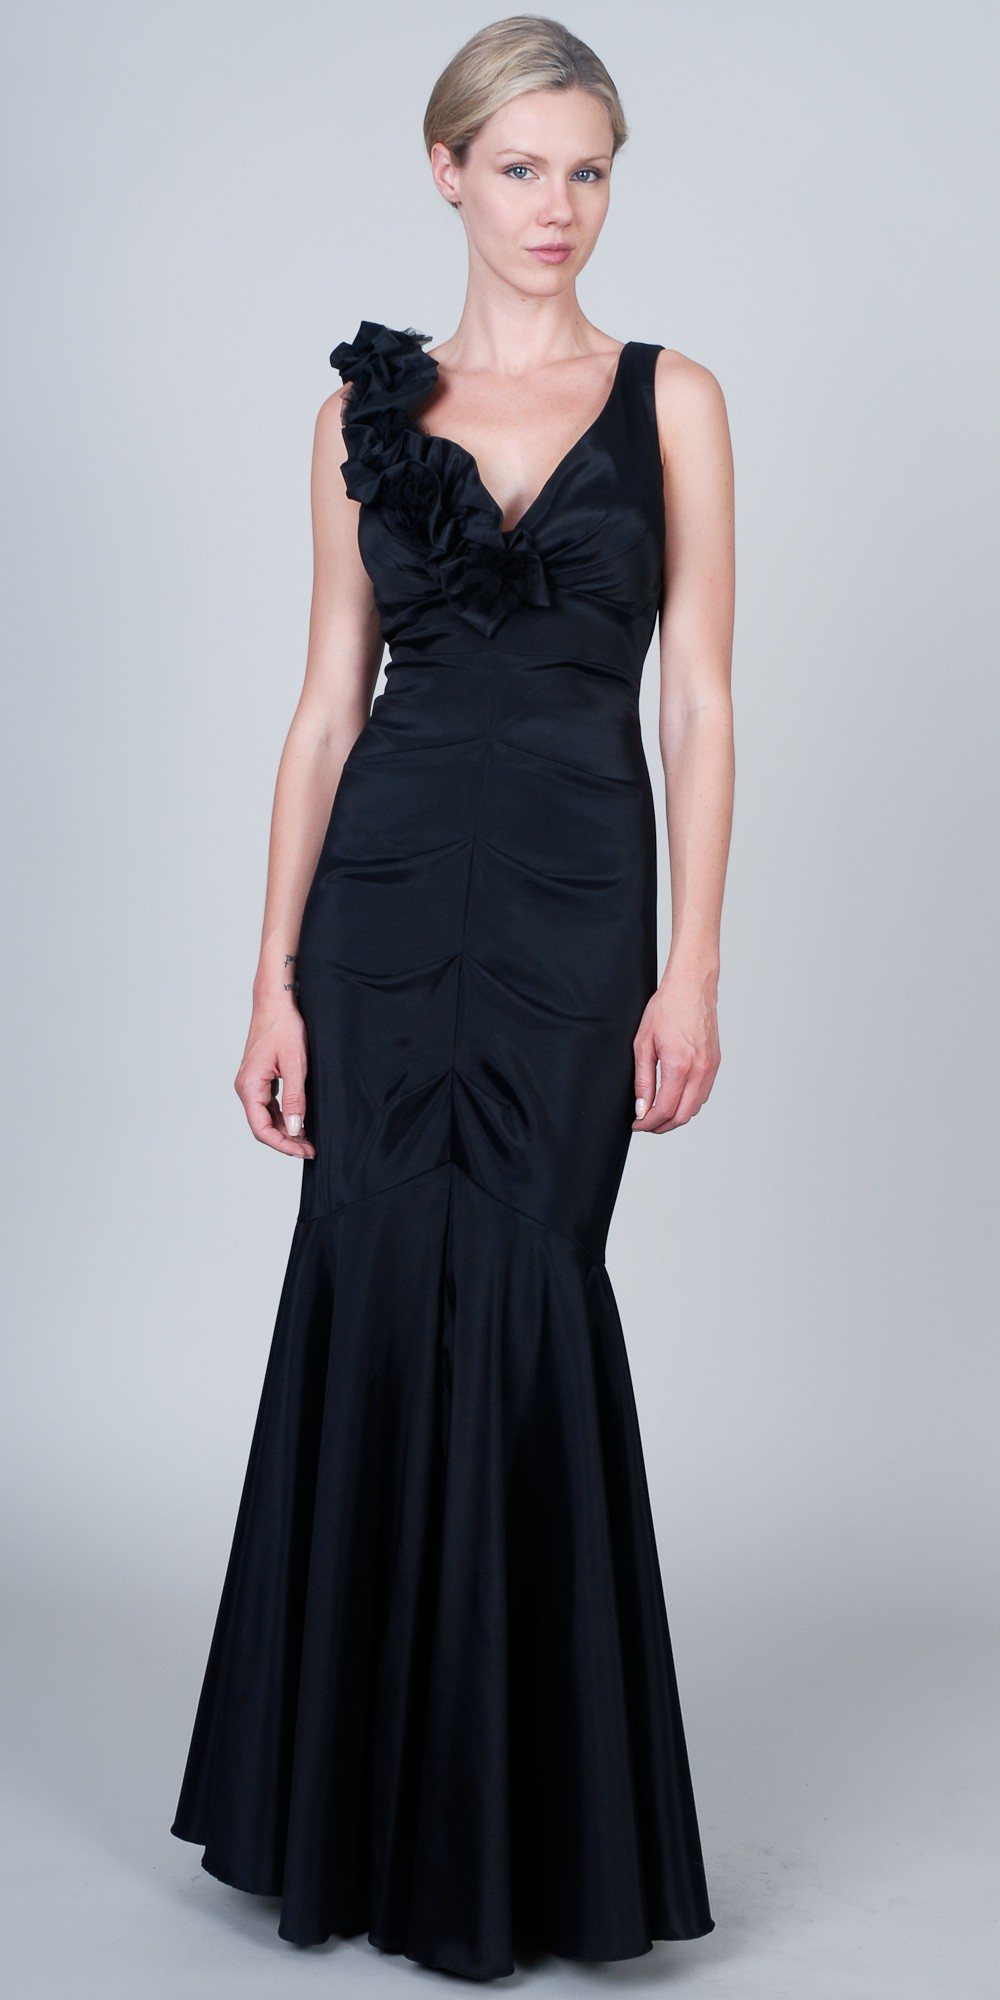 Black evening dresses plus size - Style Jeans